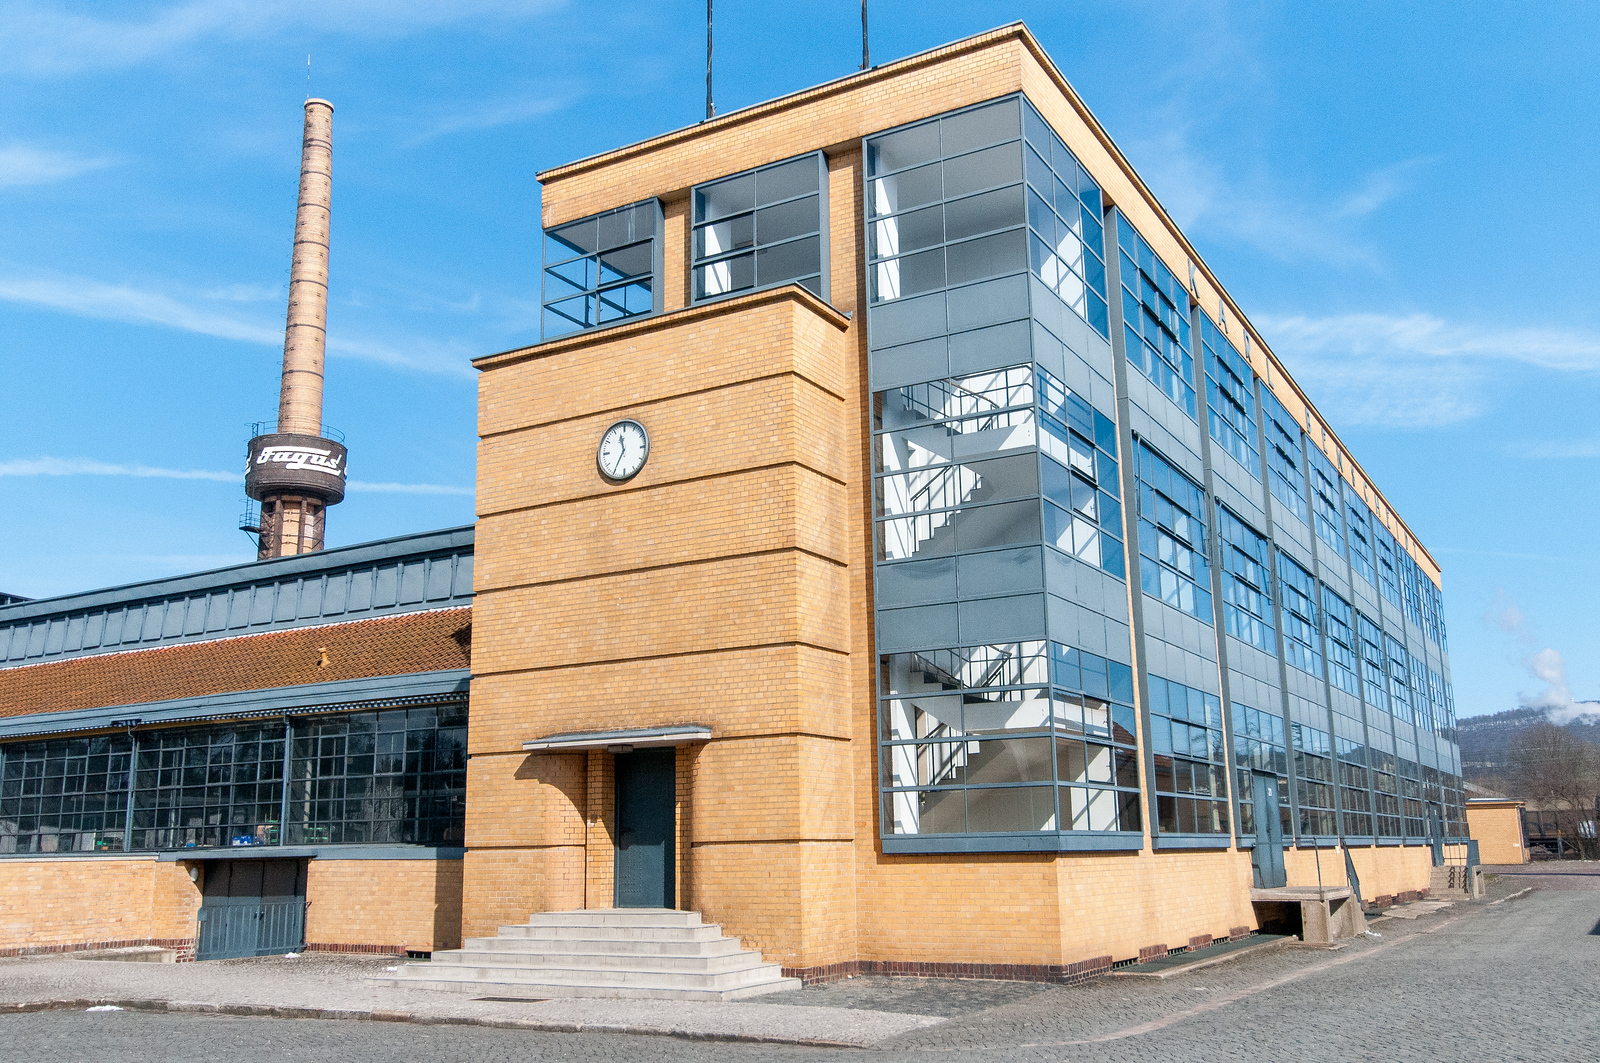 Fagus Factory in Alfeld UNESCO World Heritage Site